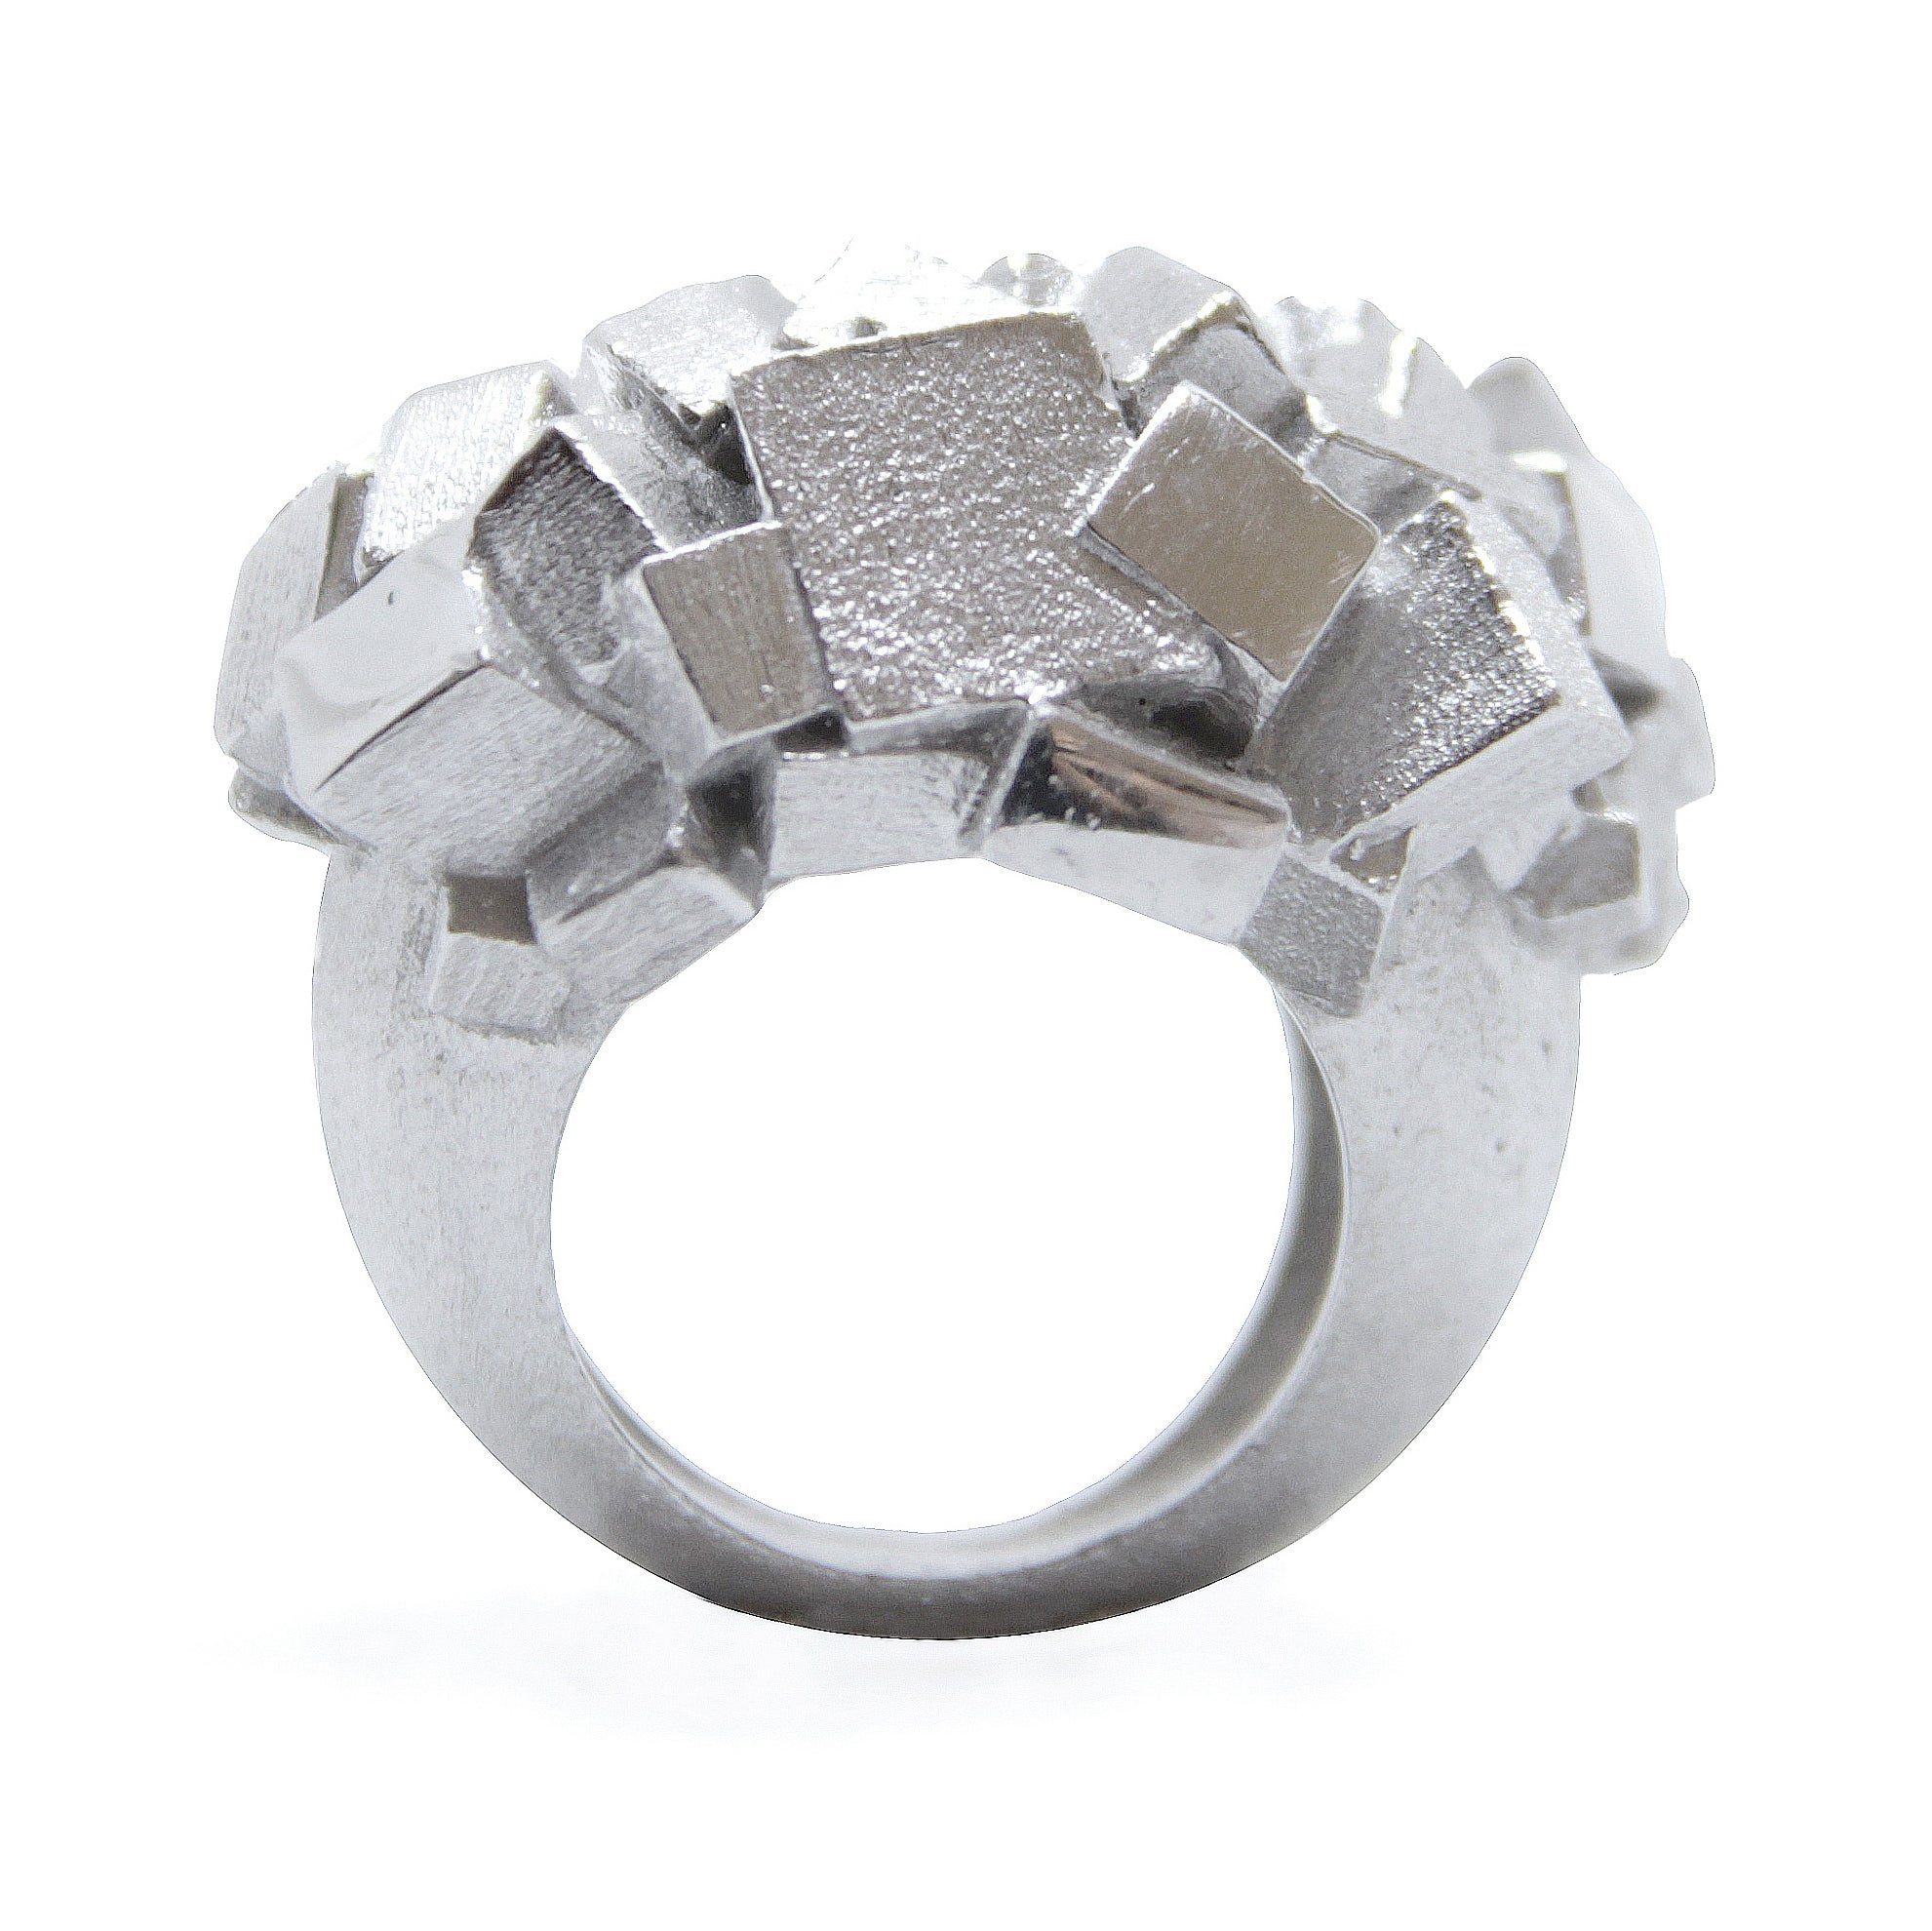 Ring CA-014-B by Kathia Bucho - Art Jewellery Store: Song of Jewellery